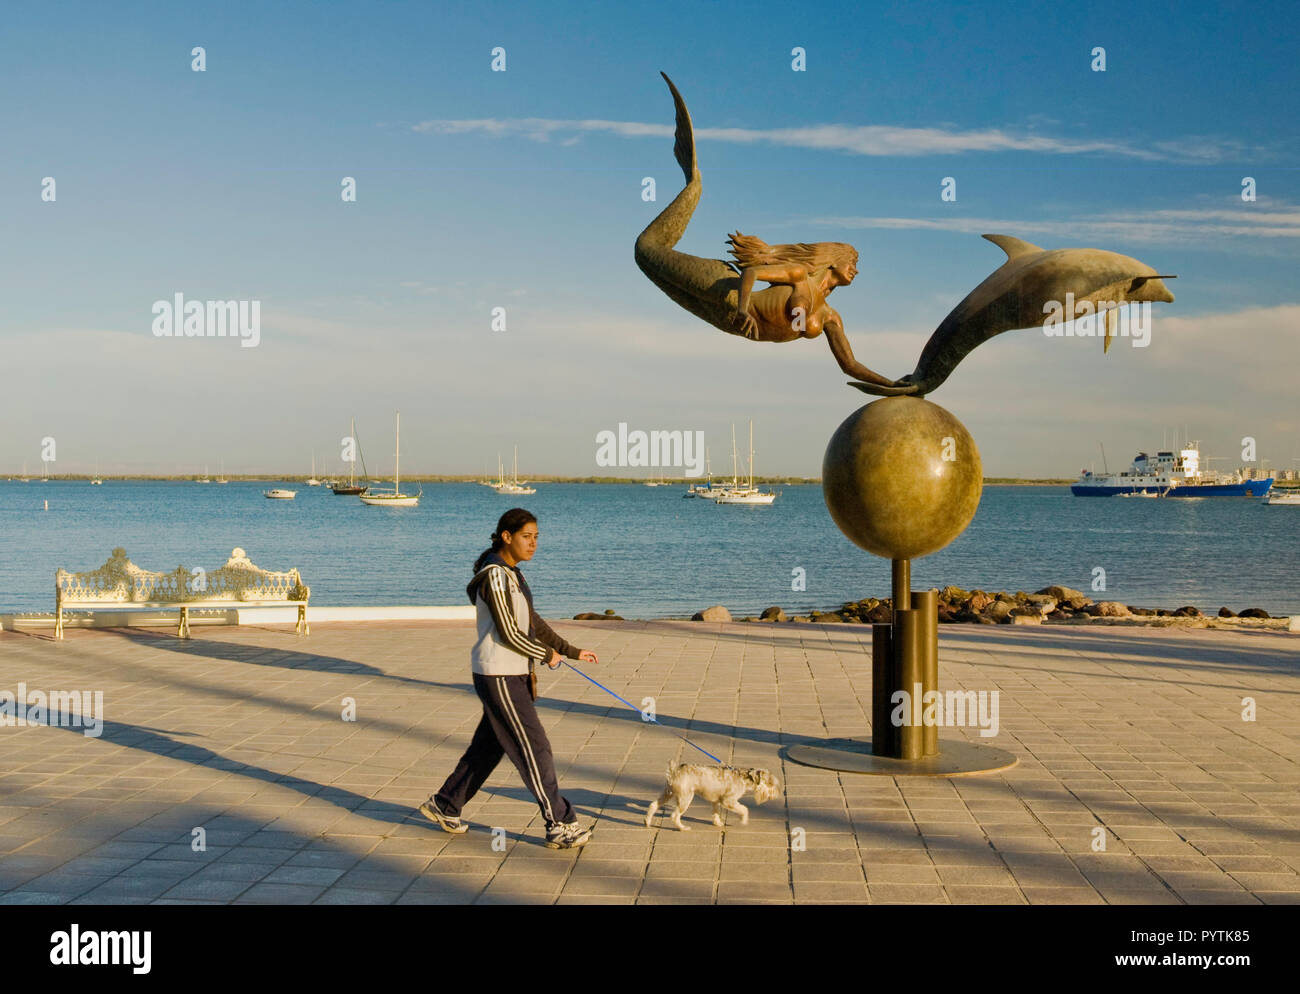 Paraiso del mar (Paradise of the Sea) sculpture by Octavio Gonzalez at Malecon, La Paz, Baja California Sur, Mexico - Stock Image